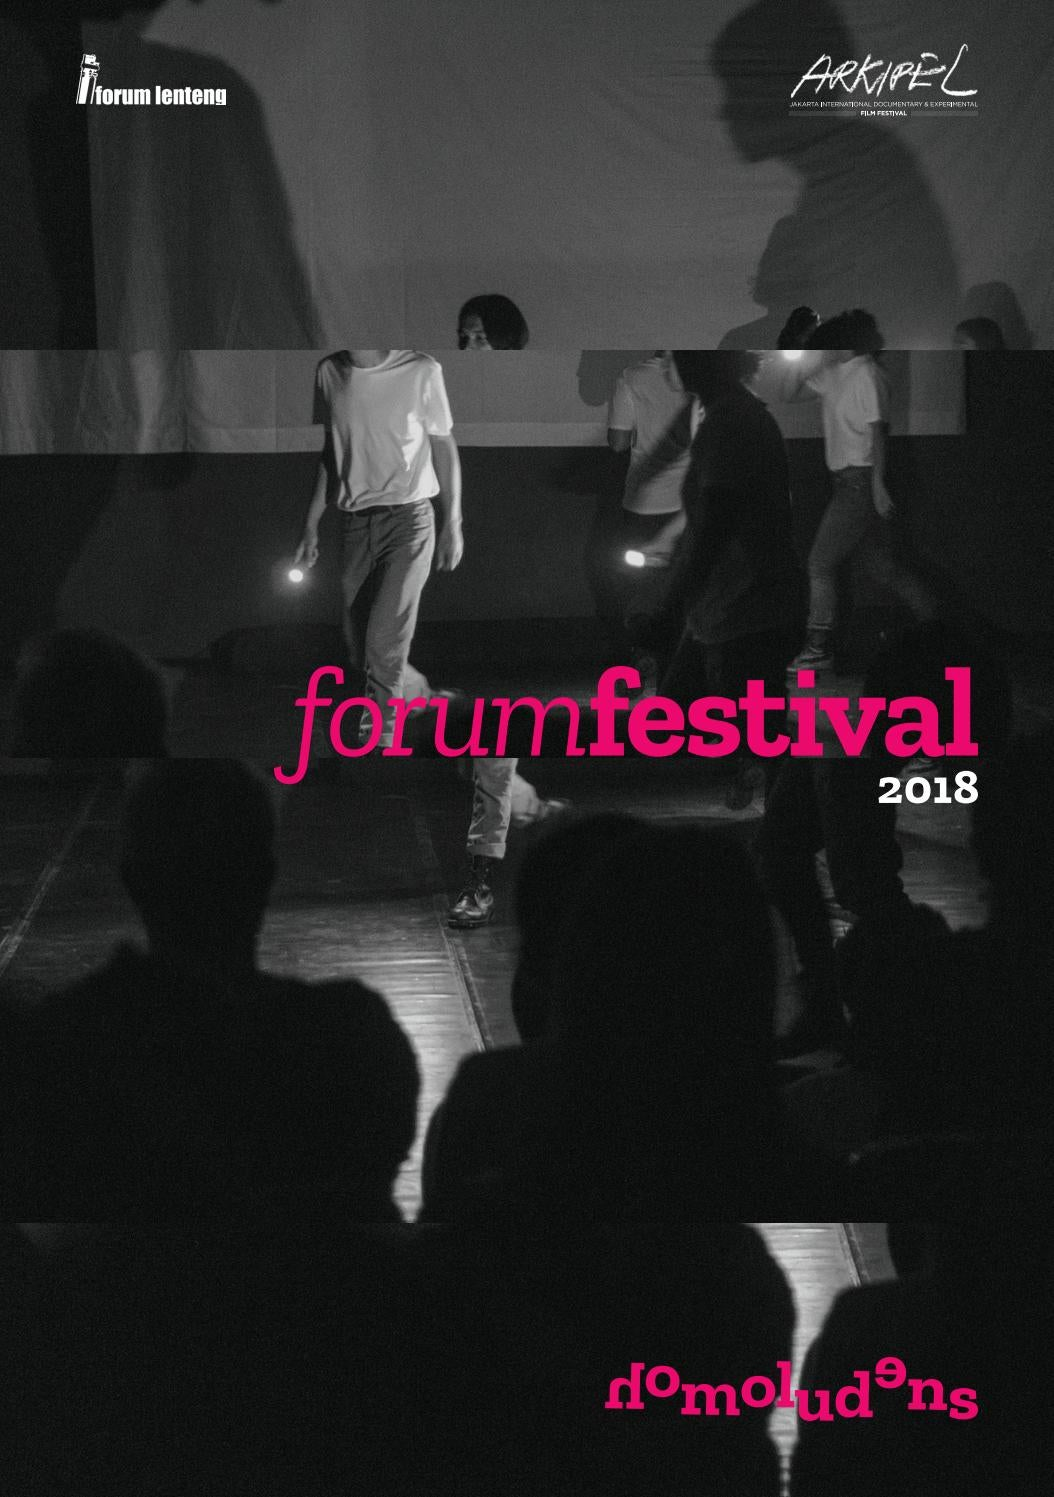 Forum Festival Arkipel Homoludens International